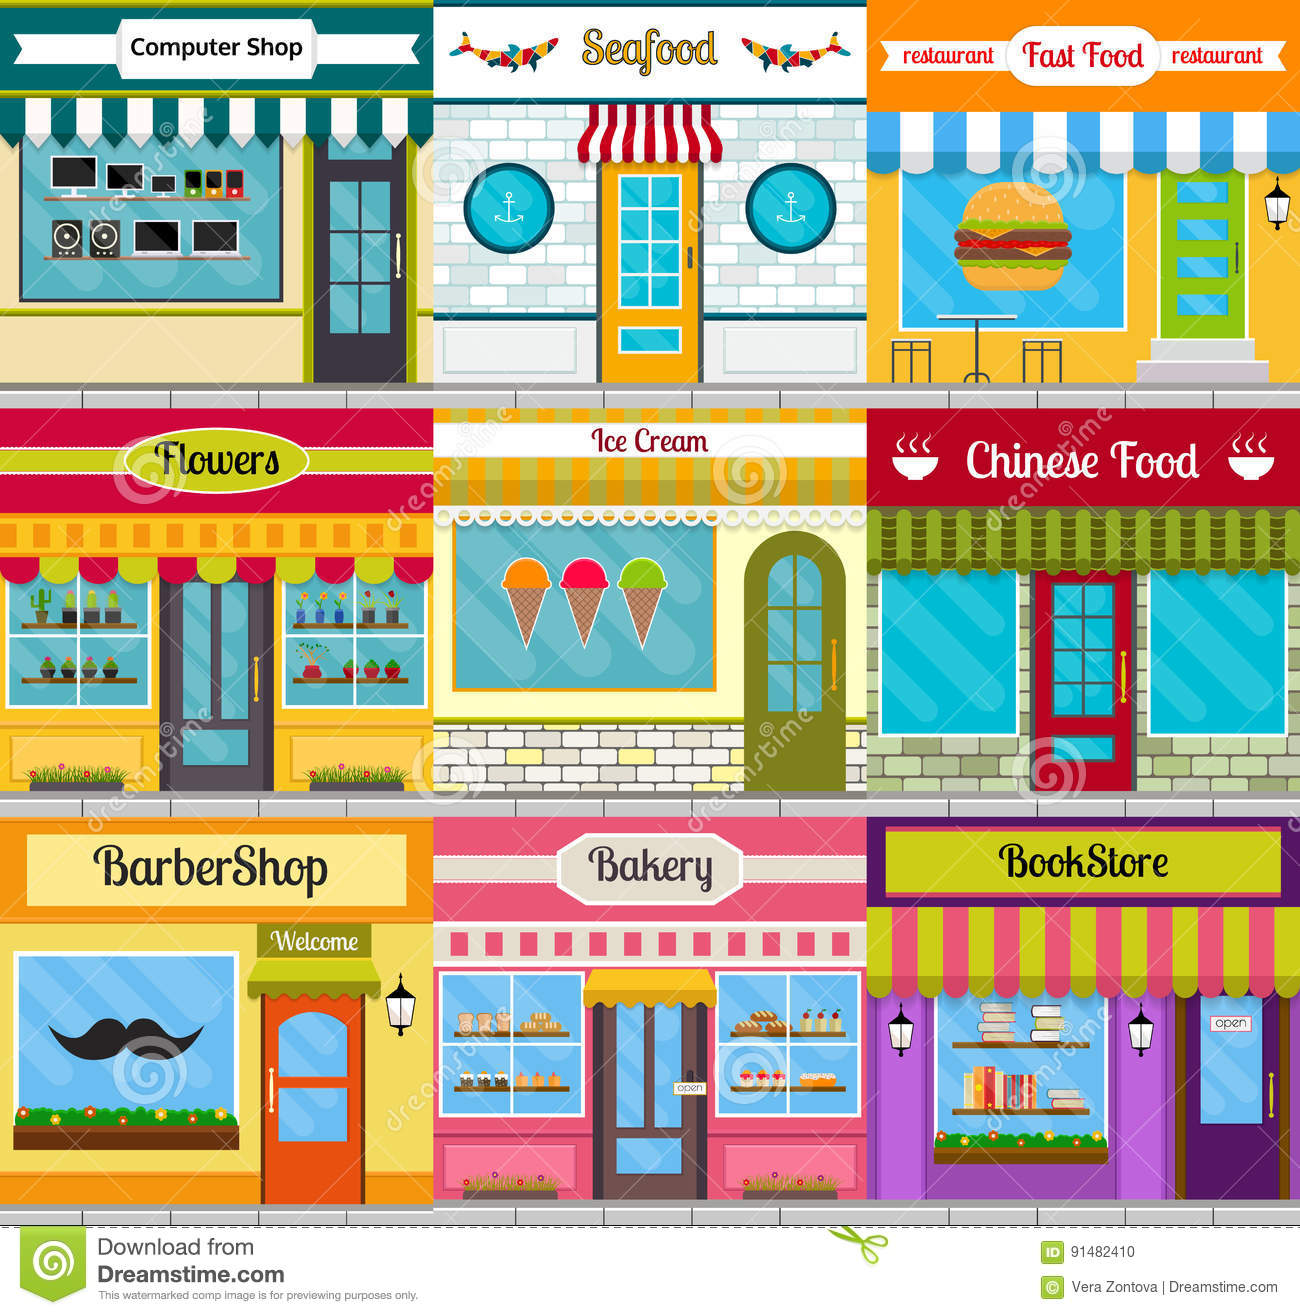 Shop Facades And Restaurant Fronts Set Stock Vector Illustration Of Building Exterior 91482410